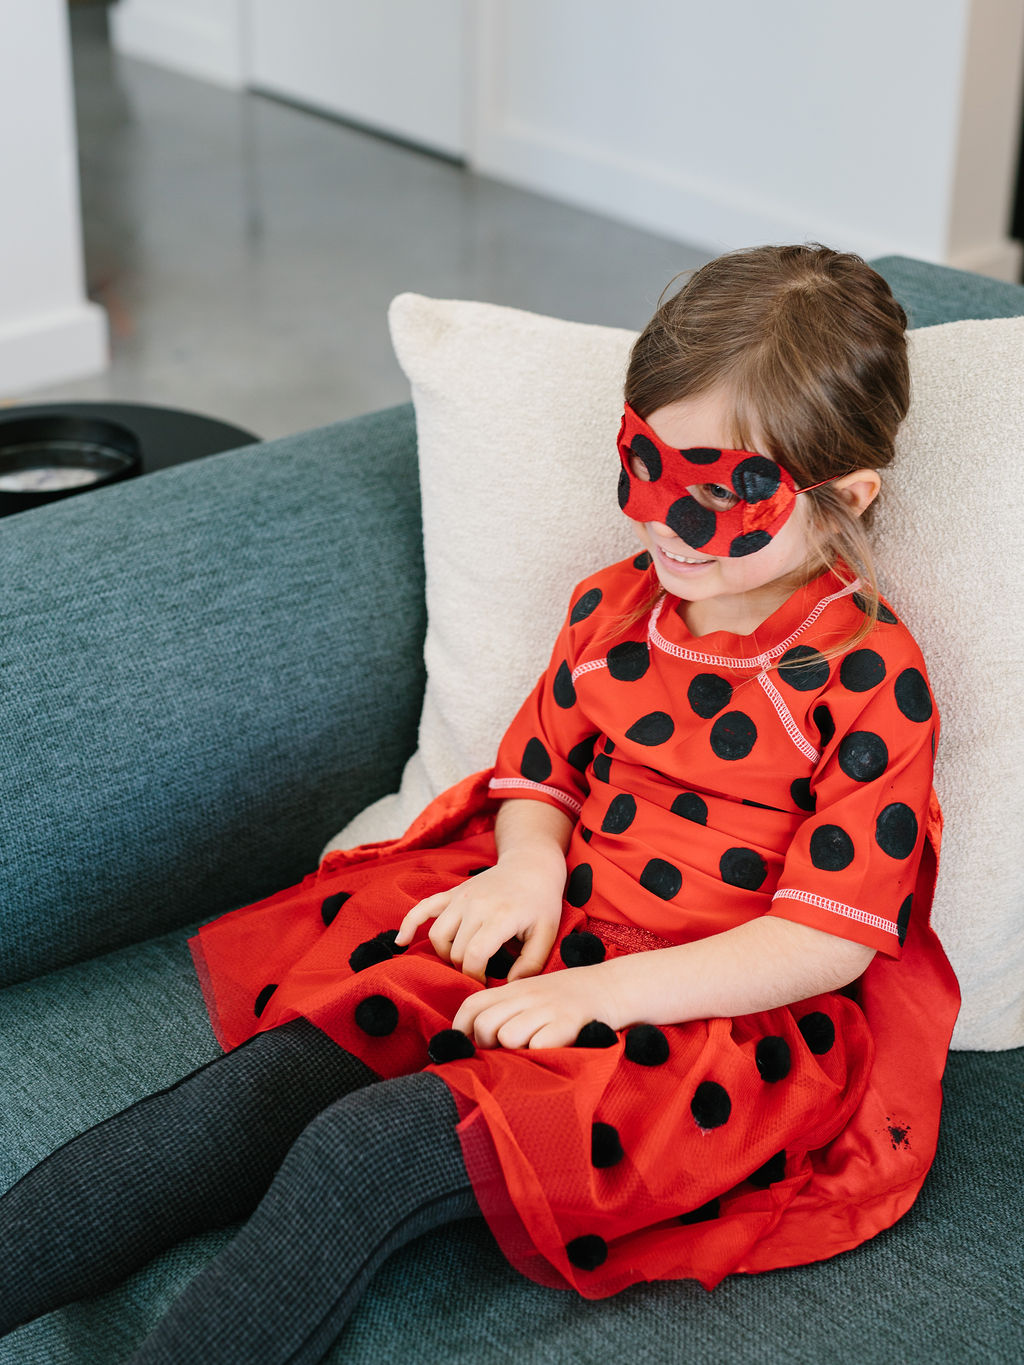 A girl in a costume sitting on a sofa